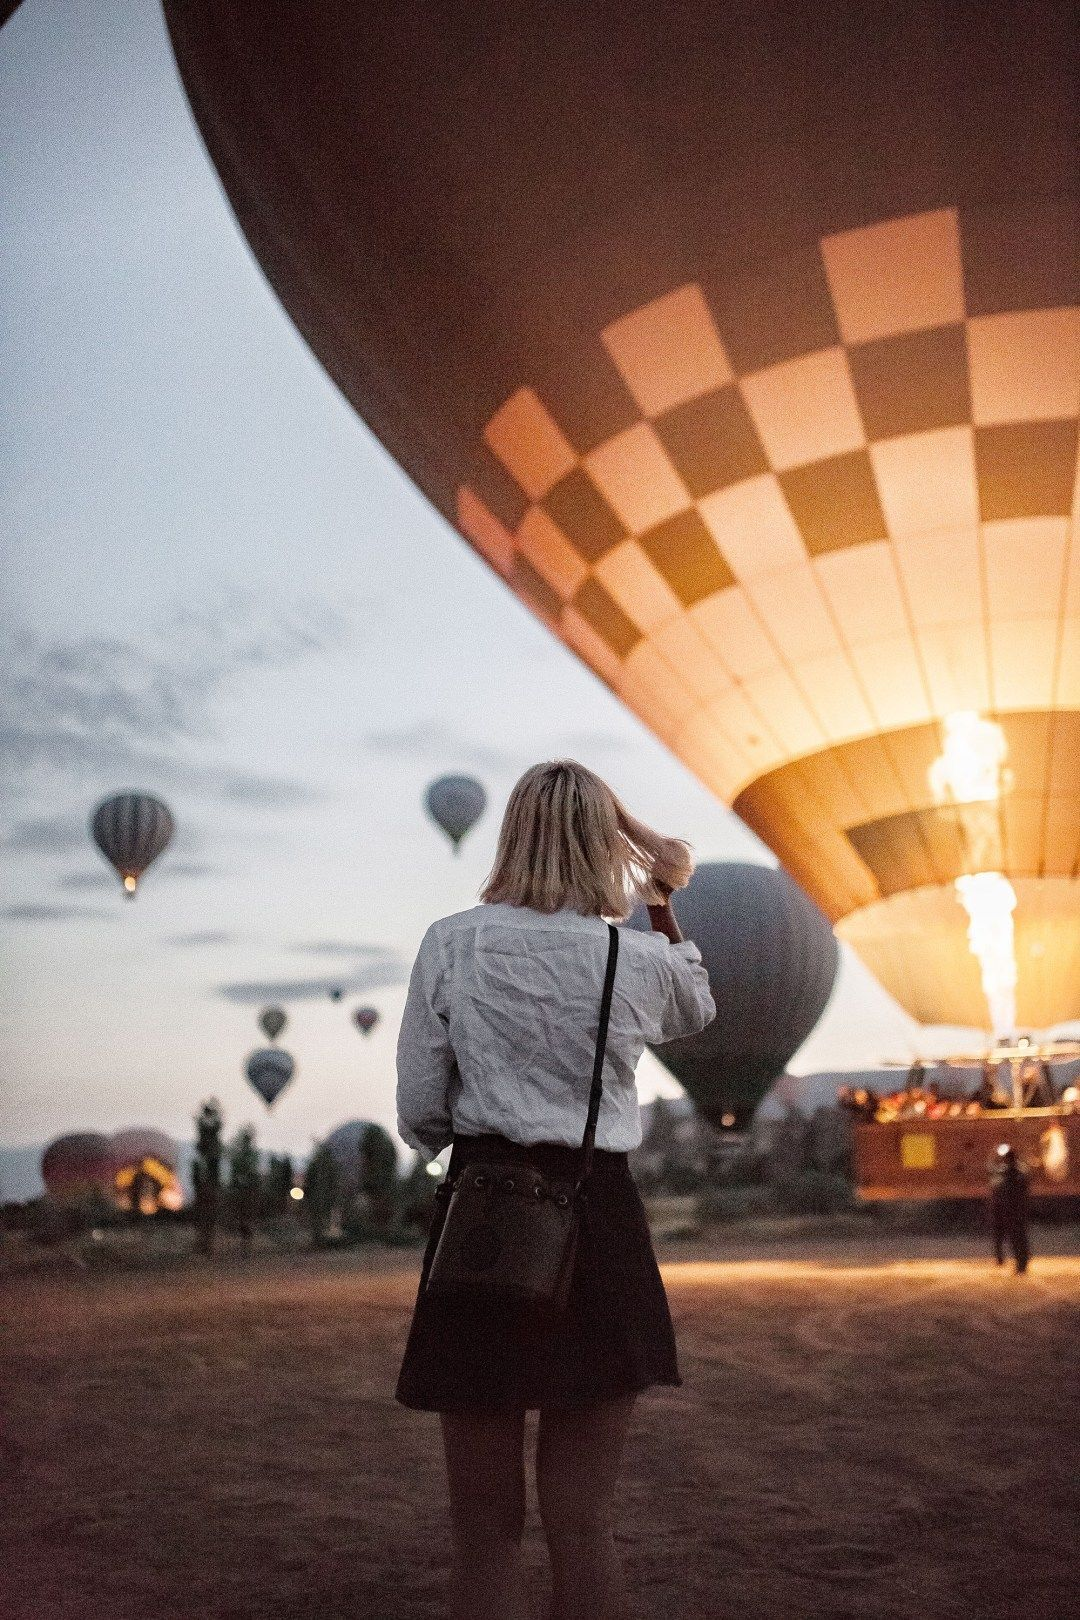 Hot Air Balloons in Turkey Here's How To Experience Them